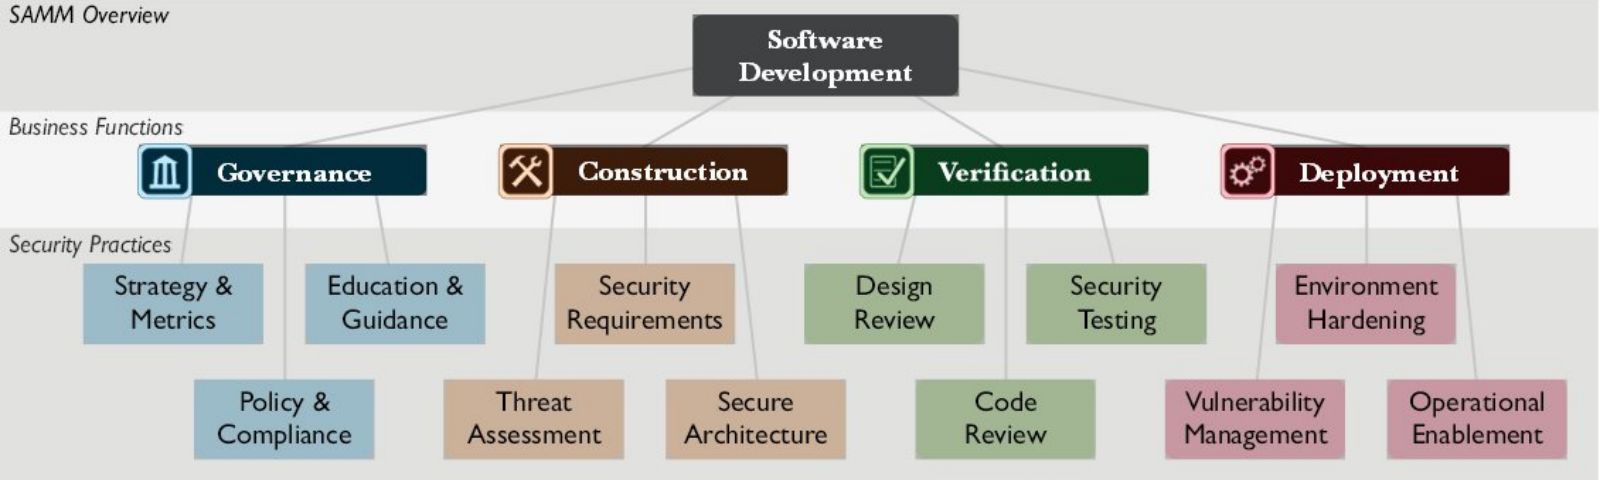 Software Assurance Maturity Model: A guide to building security into software development